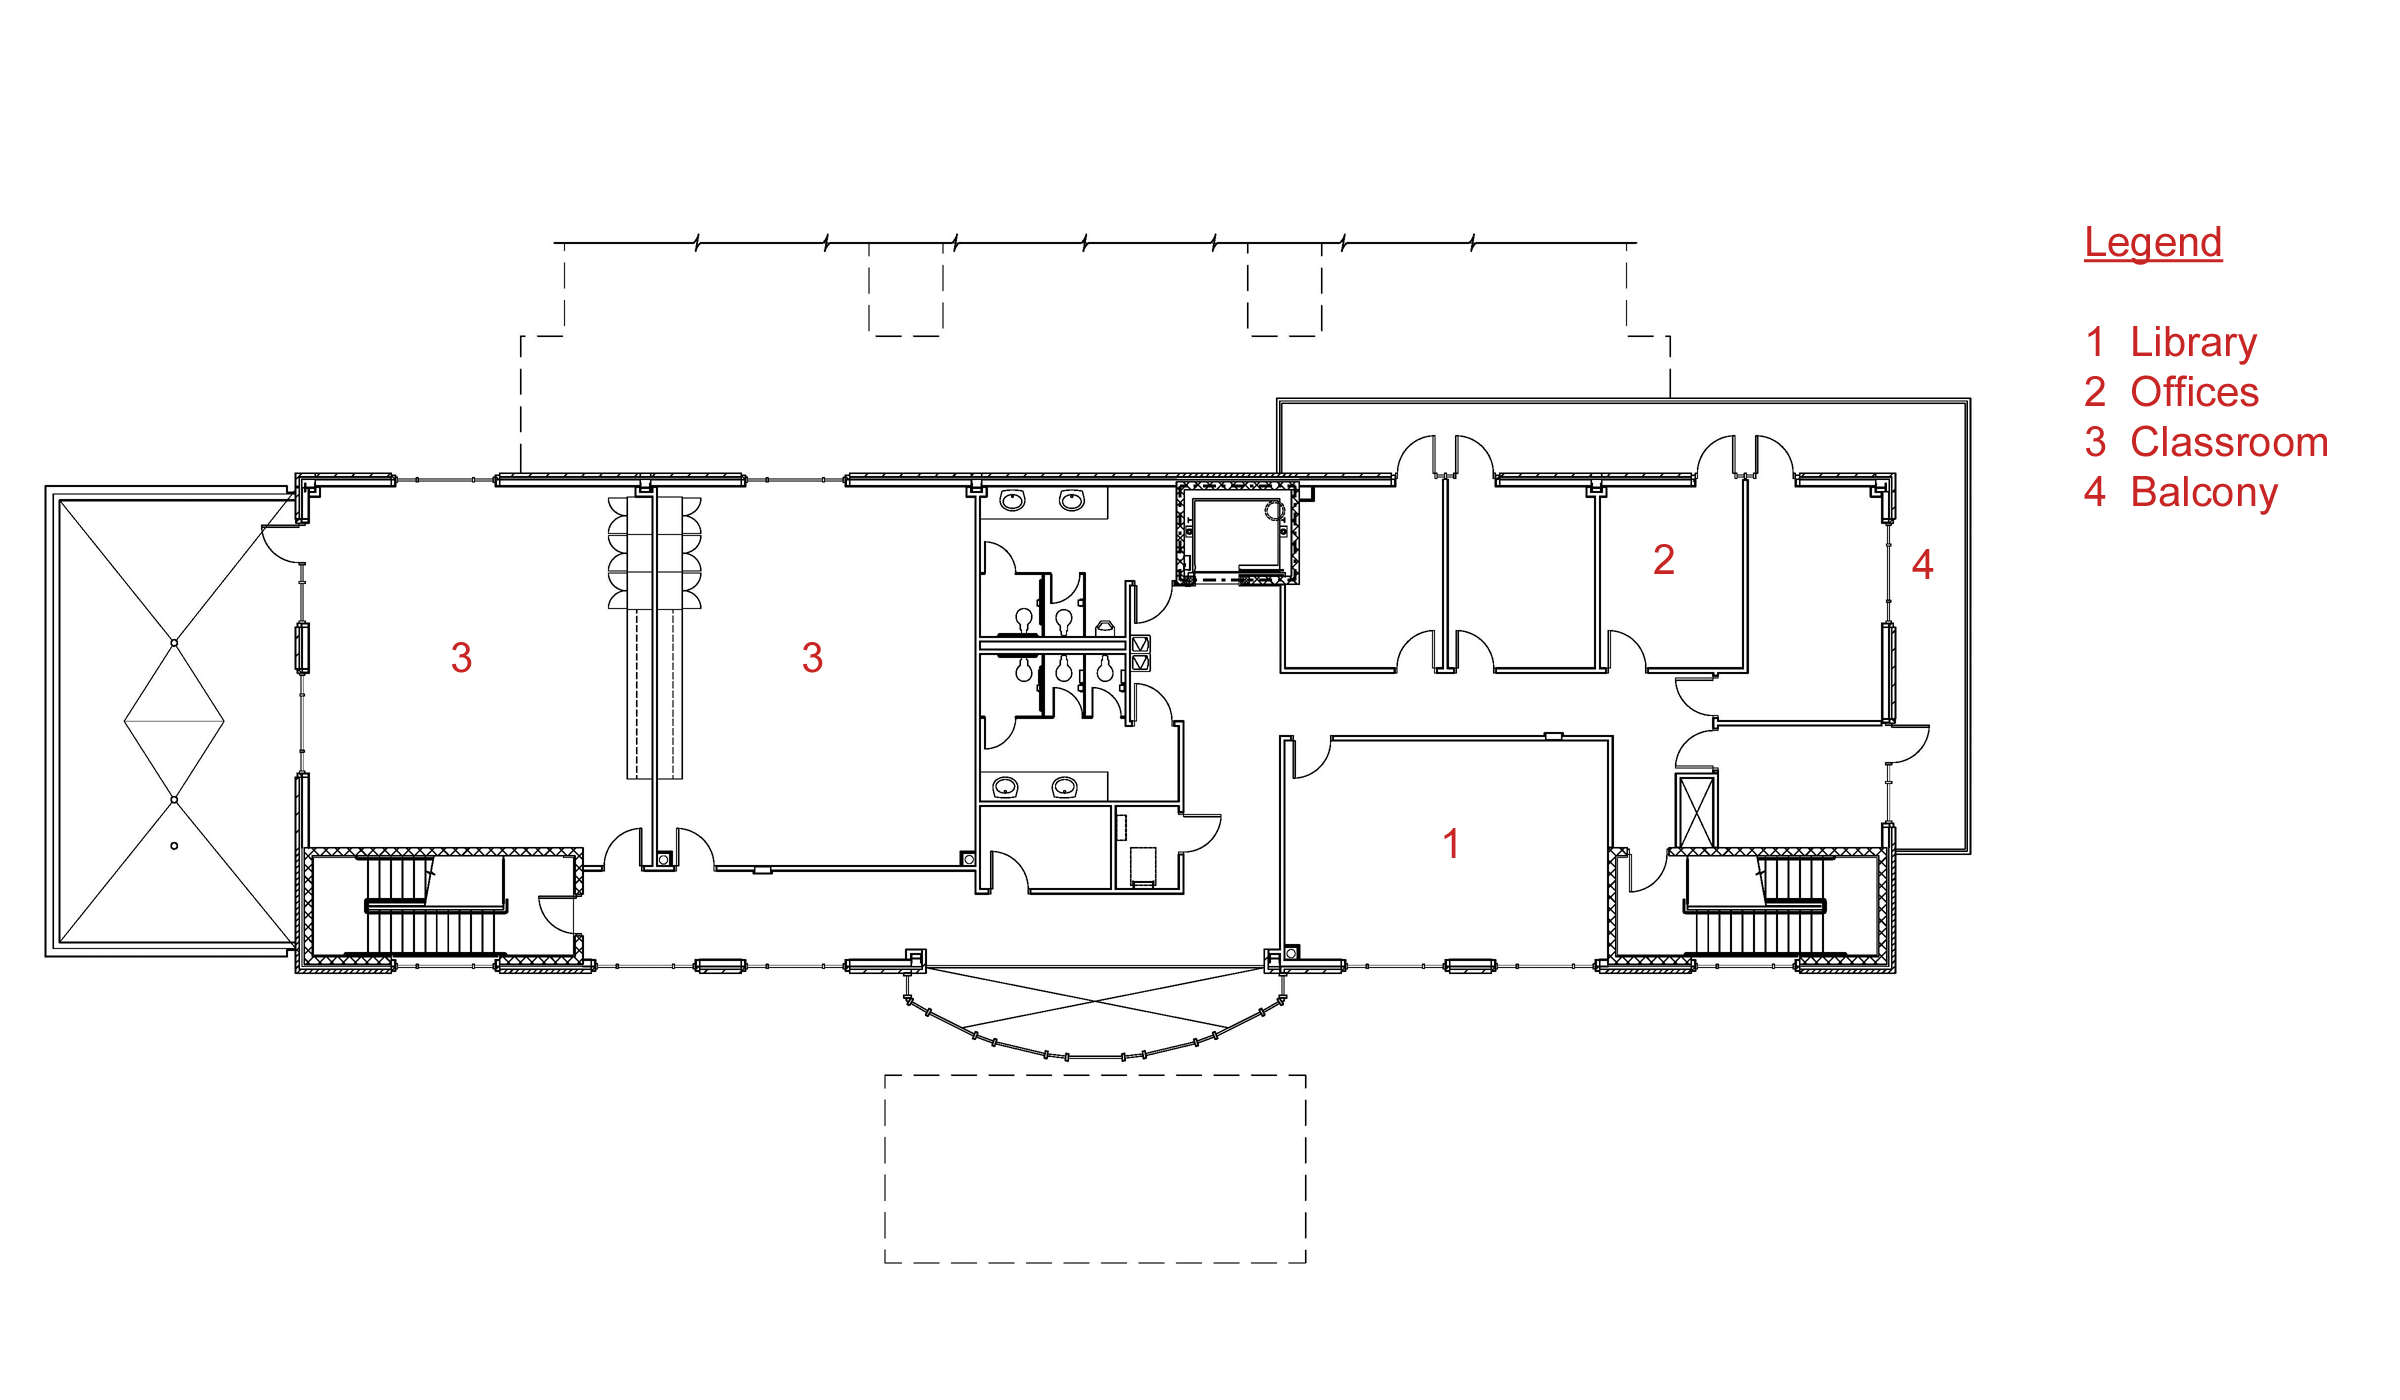 Classroom Design Description ~ Storey office building floor plan